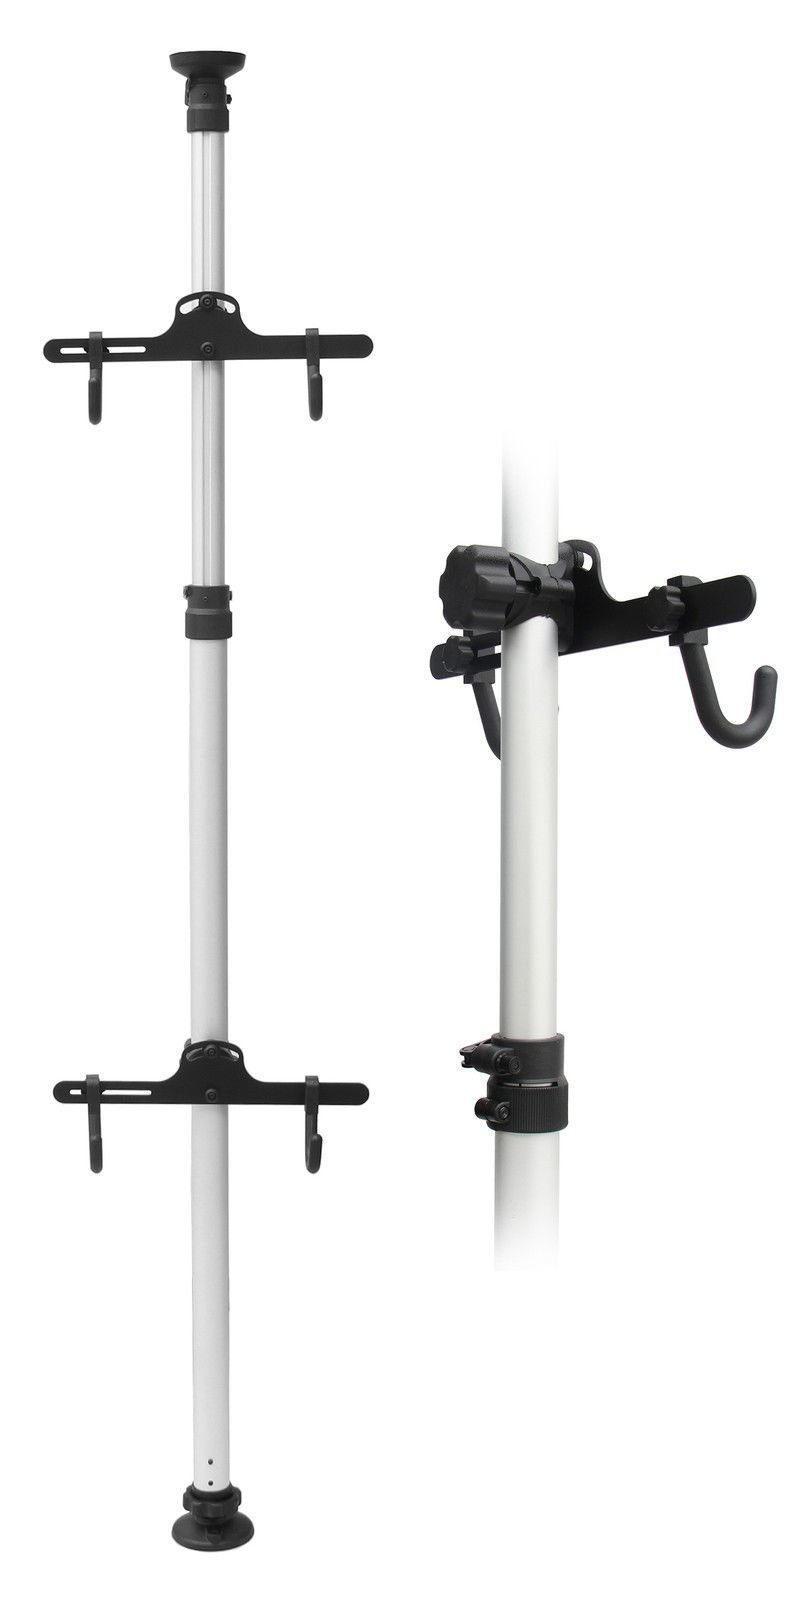 Bicycle Bike Hanger Parking Rack Storage Floor to Ceiling Stand 3.4m by CyclingDeal (Image #1)